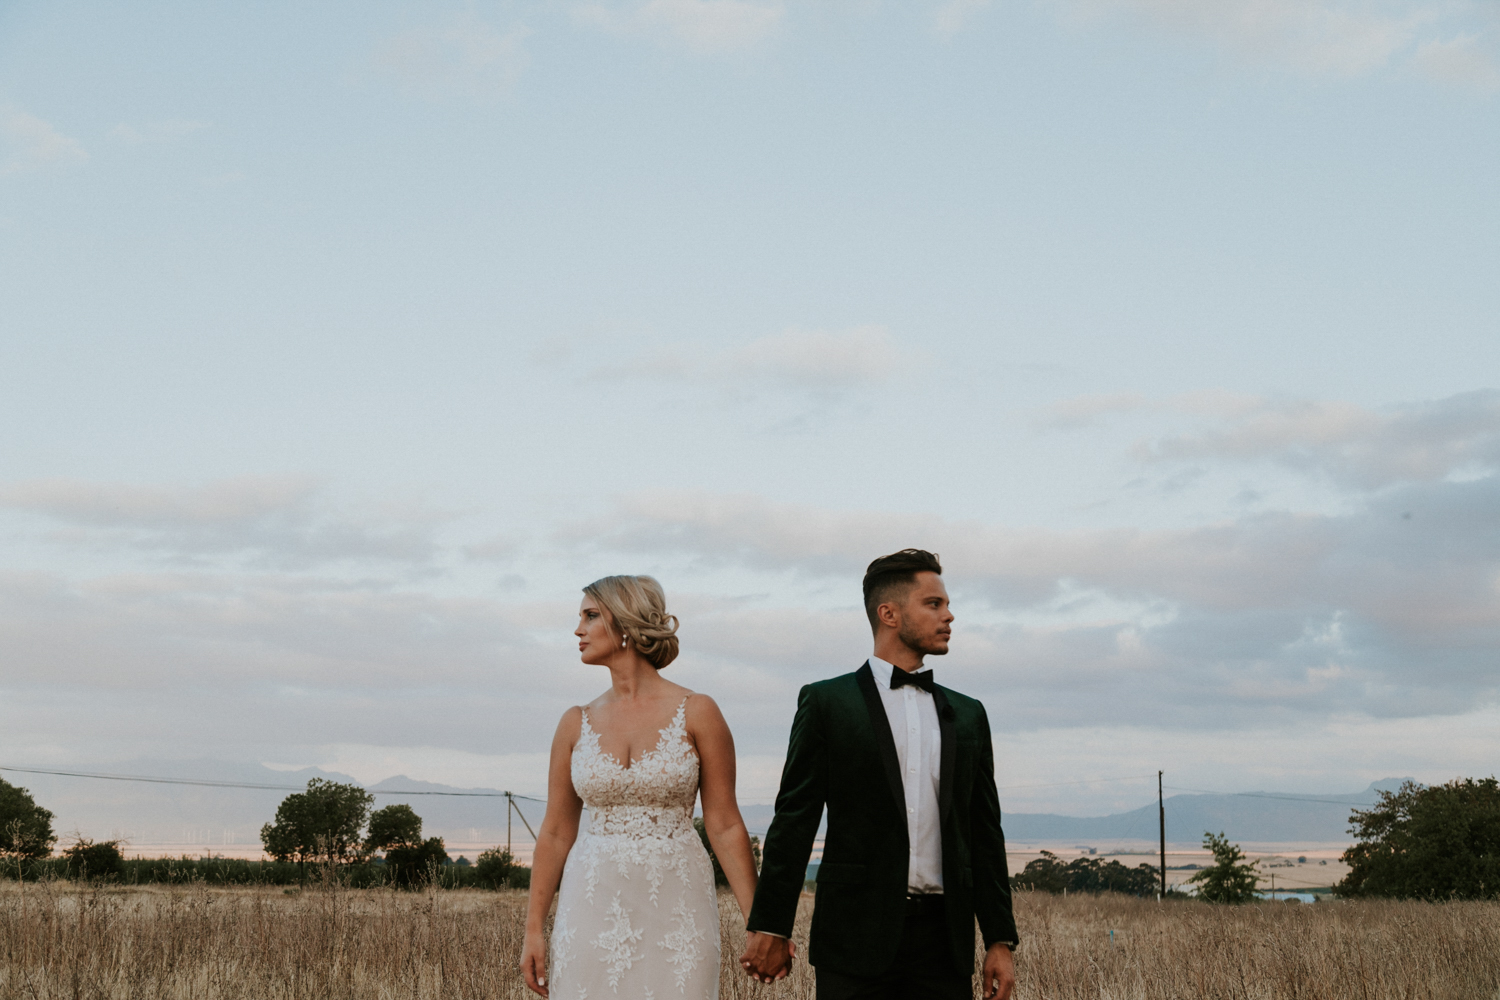 Elegant Country Wedding Cape Town - Bianca Asher Photography-85.jpg